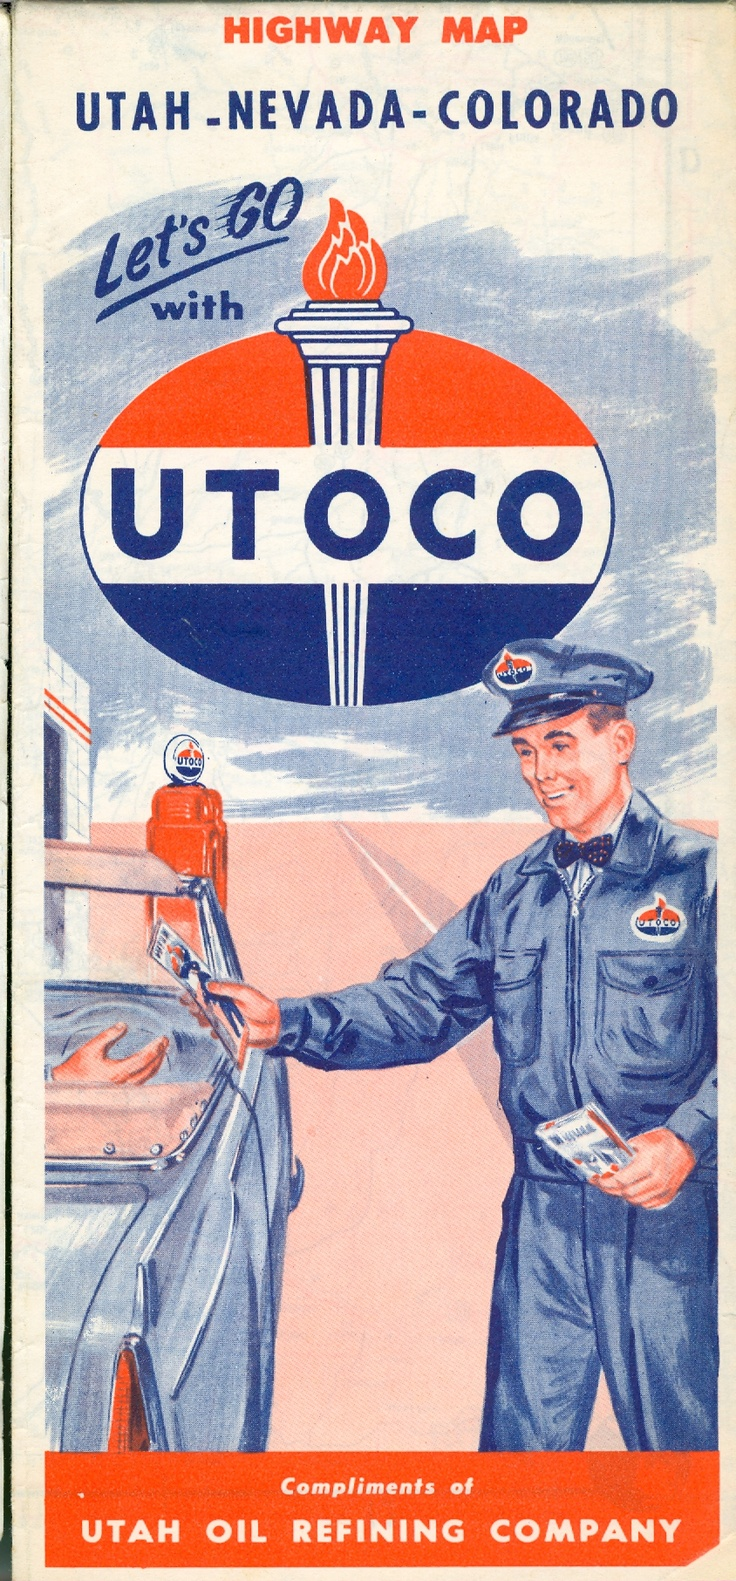 Let's go with UTOCO - A Utah Oil Refinery Company - The first successful petroleum company in the state!